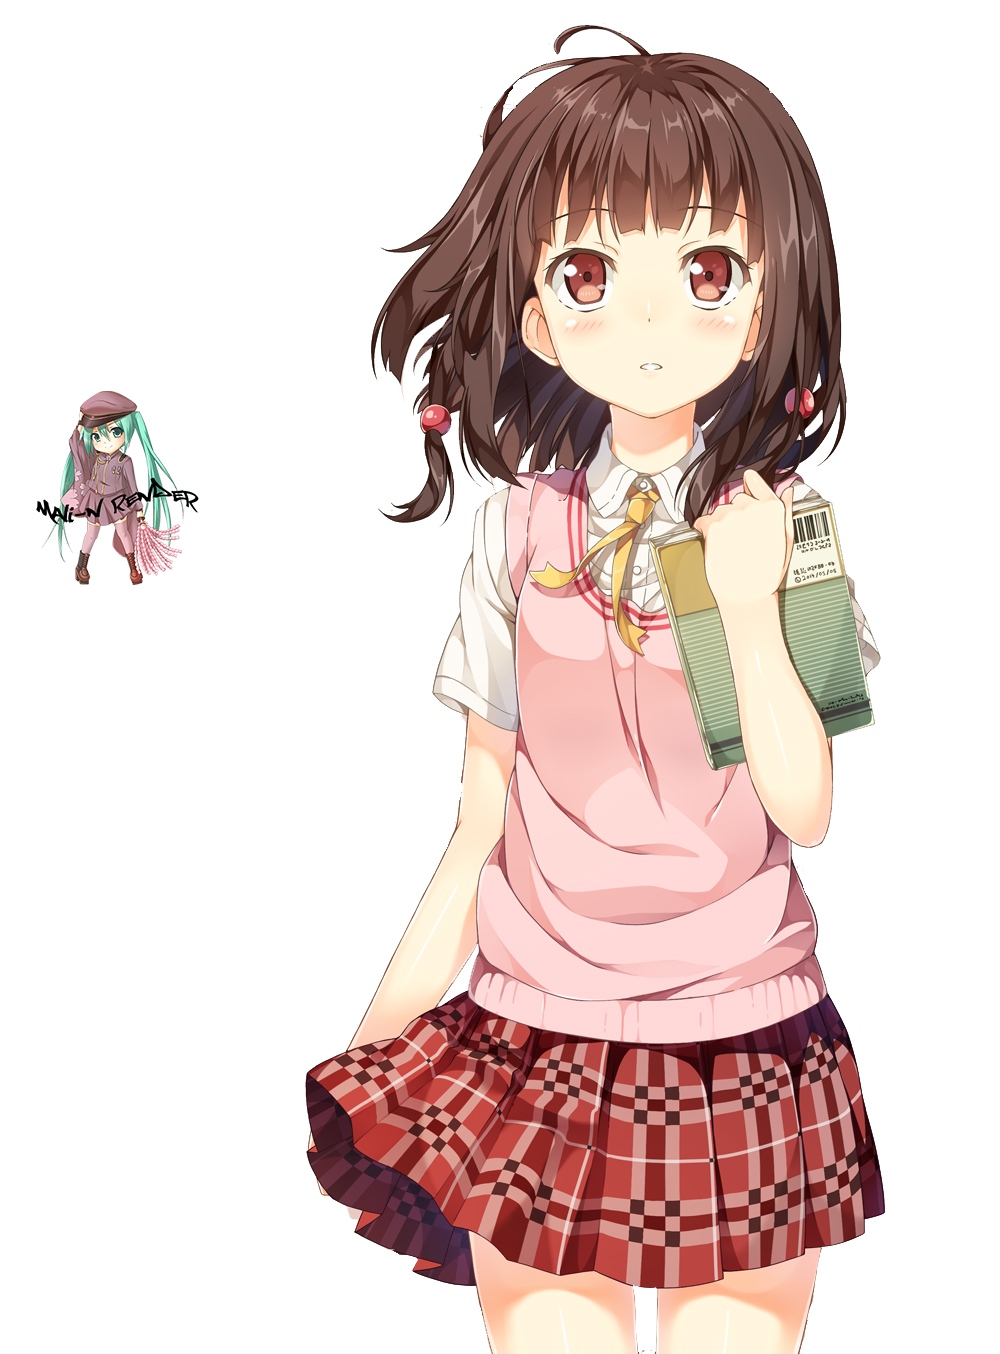 anime_girl_render_by_mali_n-d8jlzup.png